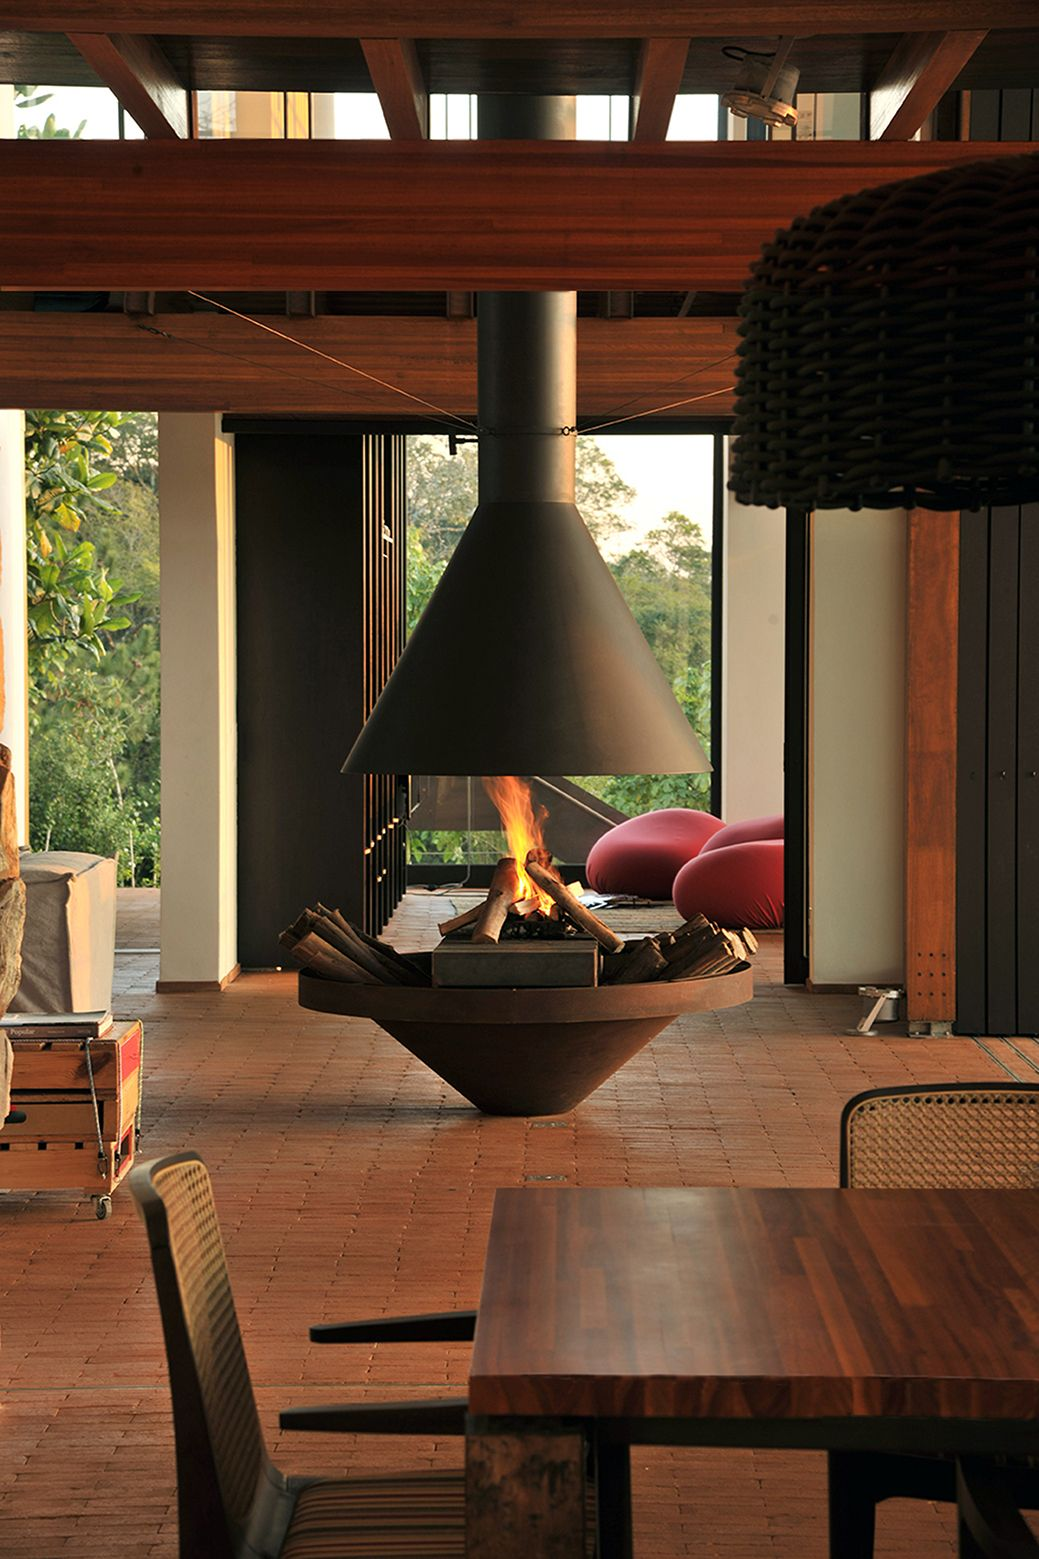 House In Quinta Da Baroneza Candida Tabet Arquitetura Freestanding Fireplace Home Fireplace Interior Architecture Design